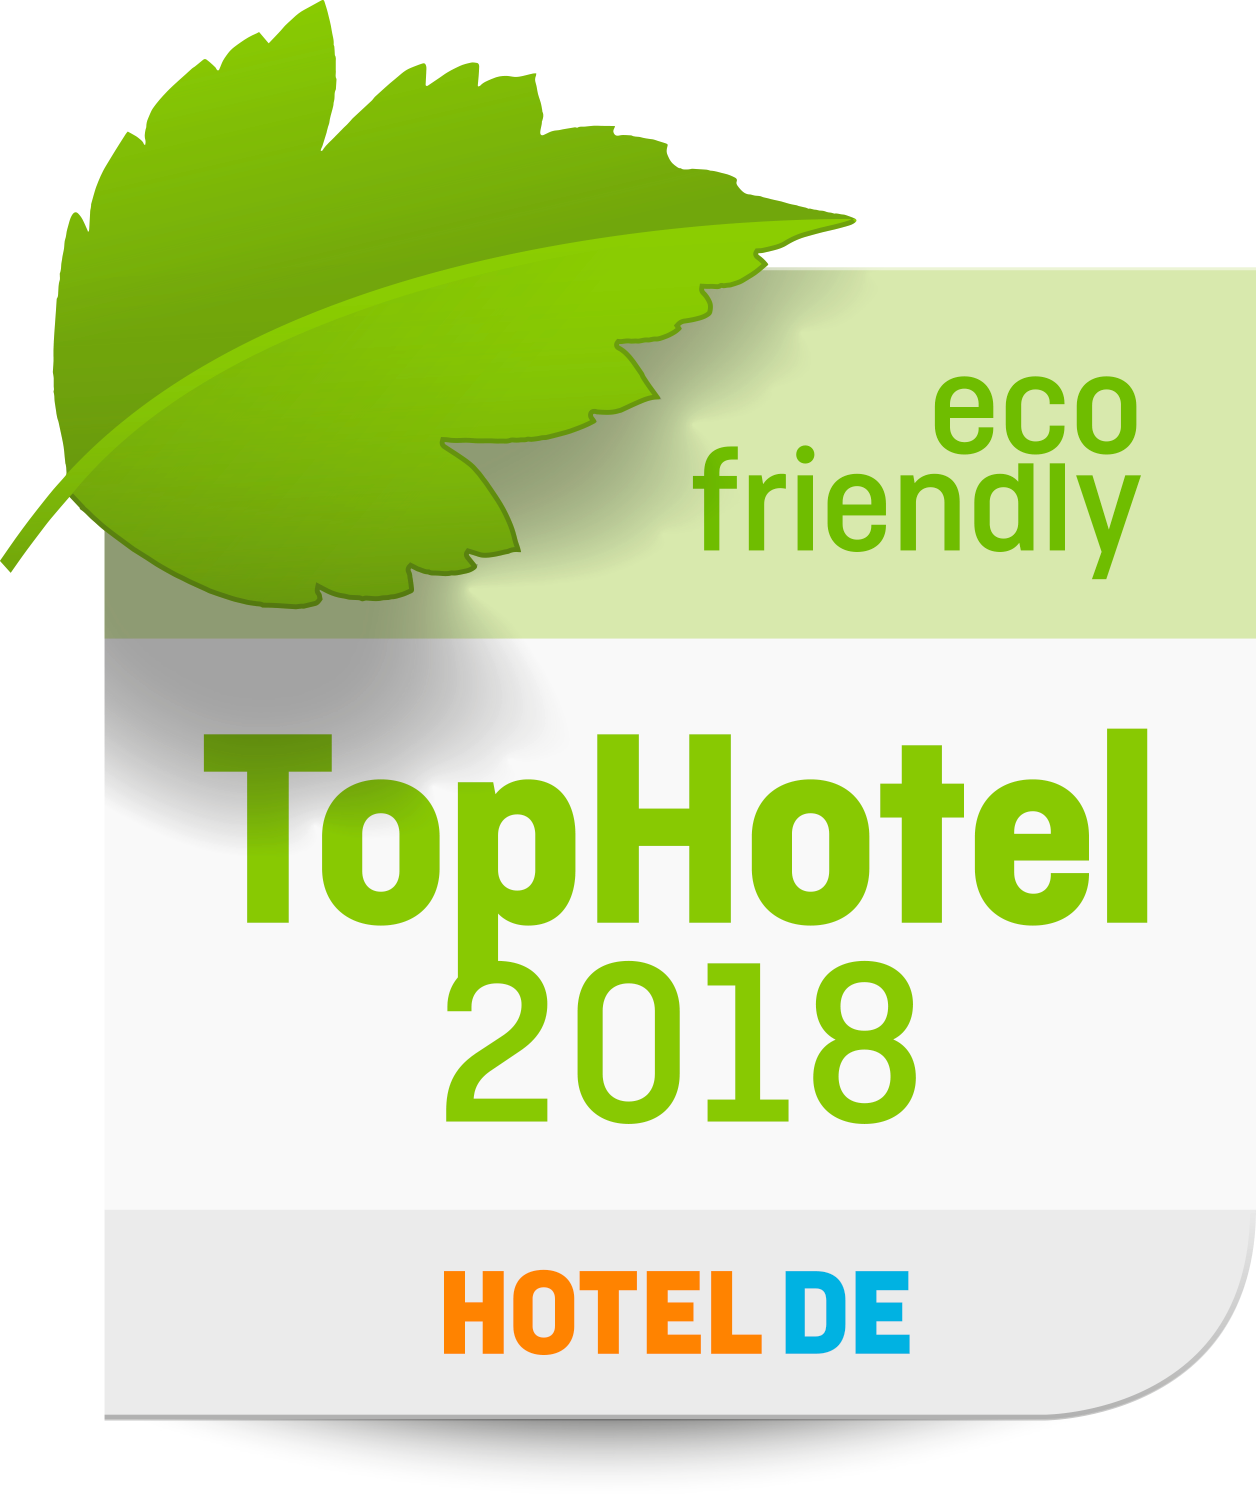 hotelde siegel ecofriendly farbig